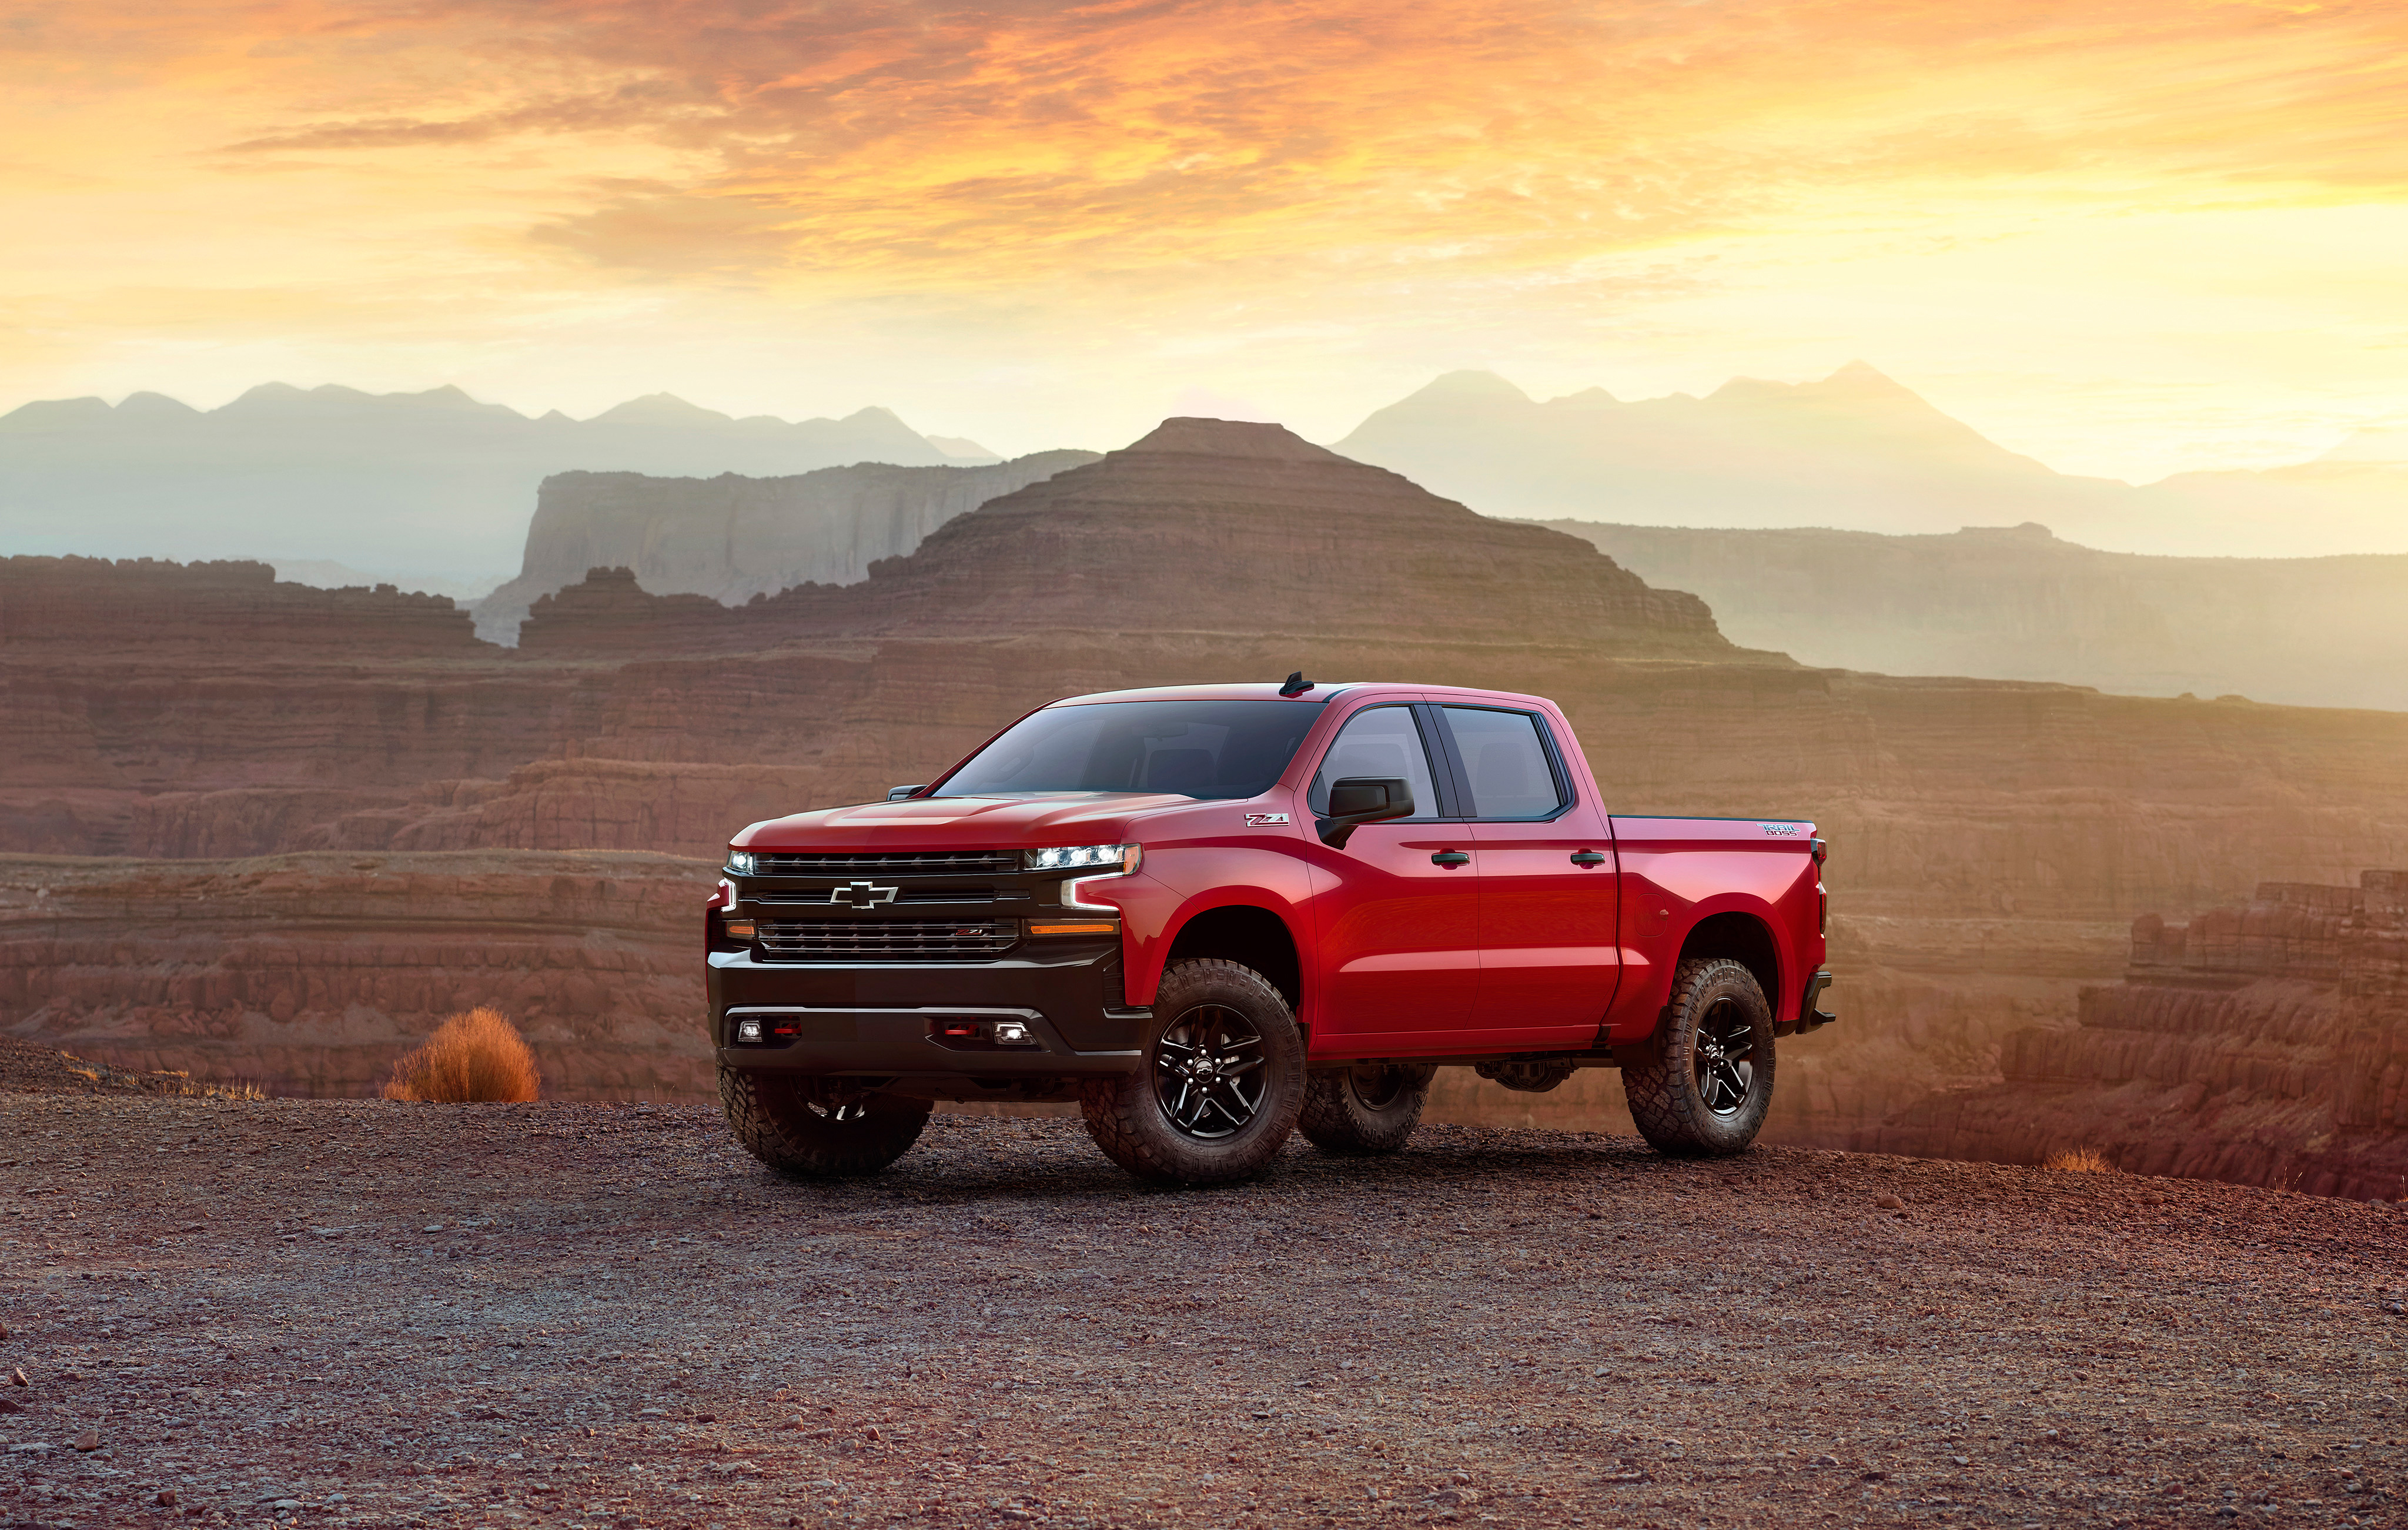 2019 Chevrolet Silverado, HD Cars, 4k Wallpapers, Images ...